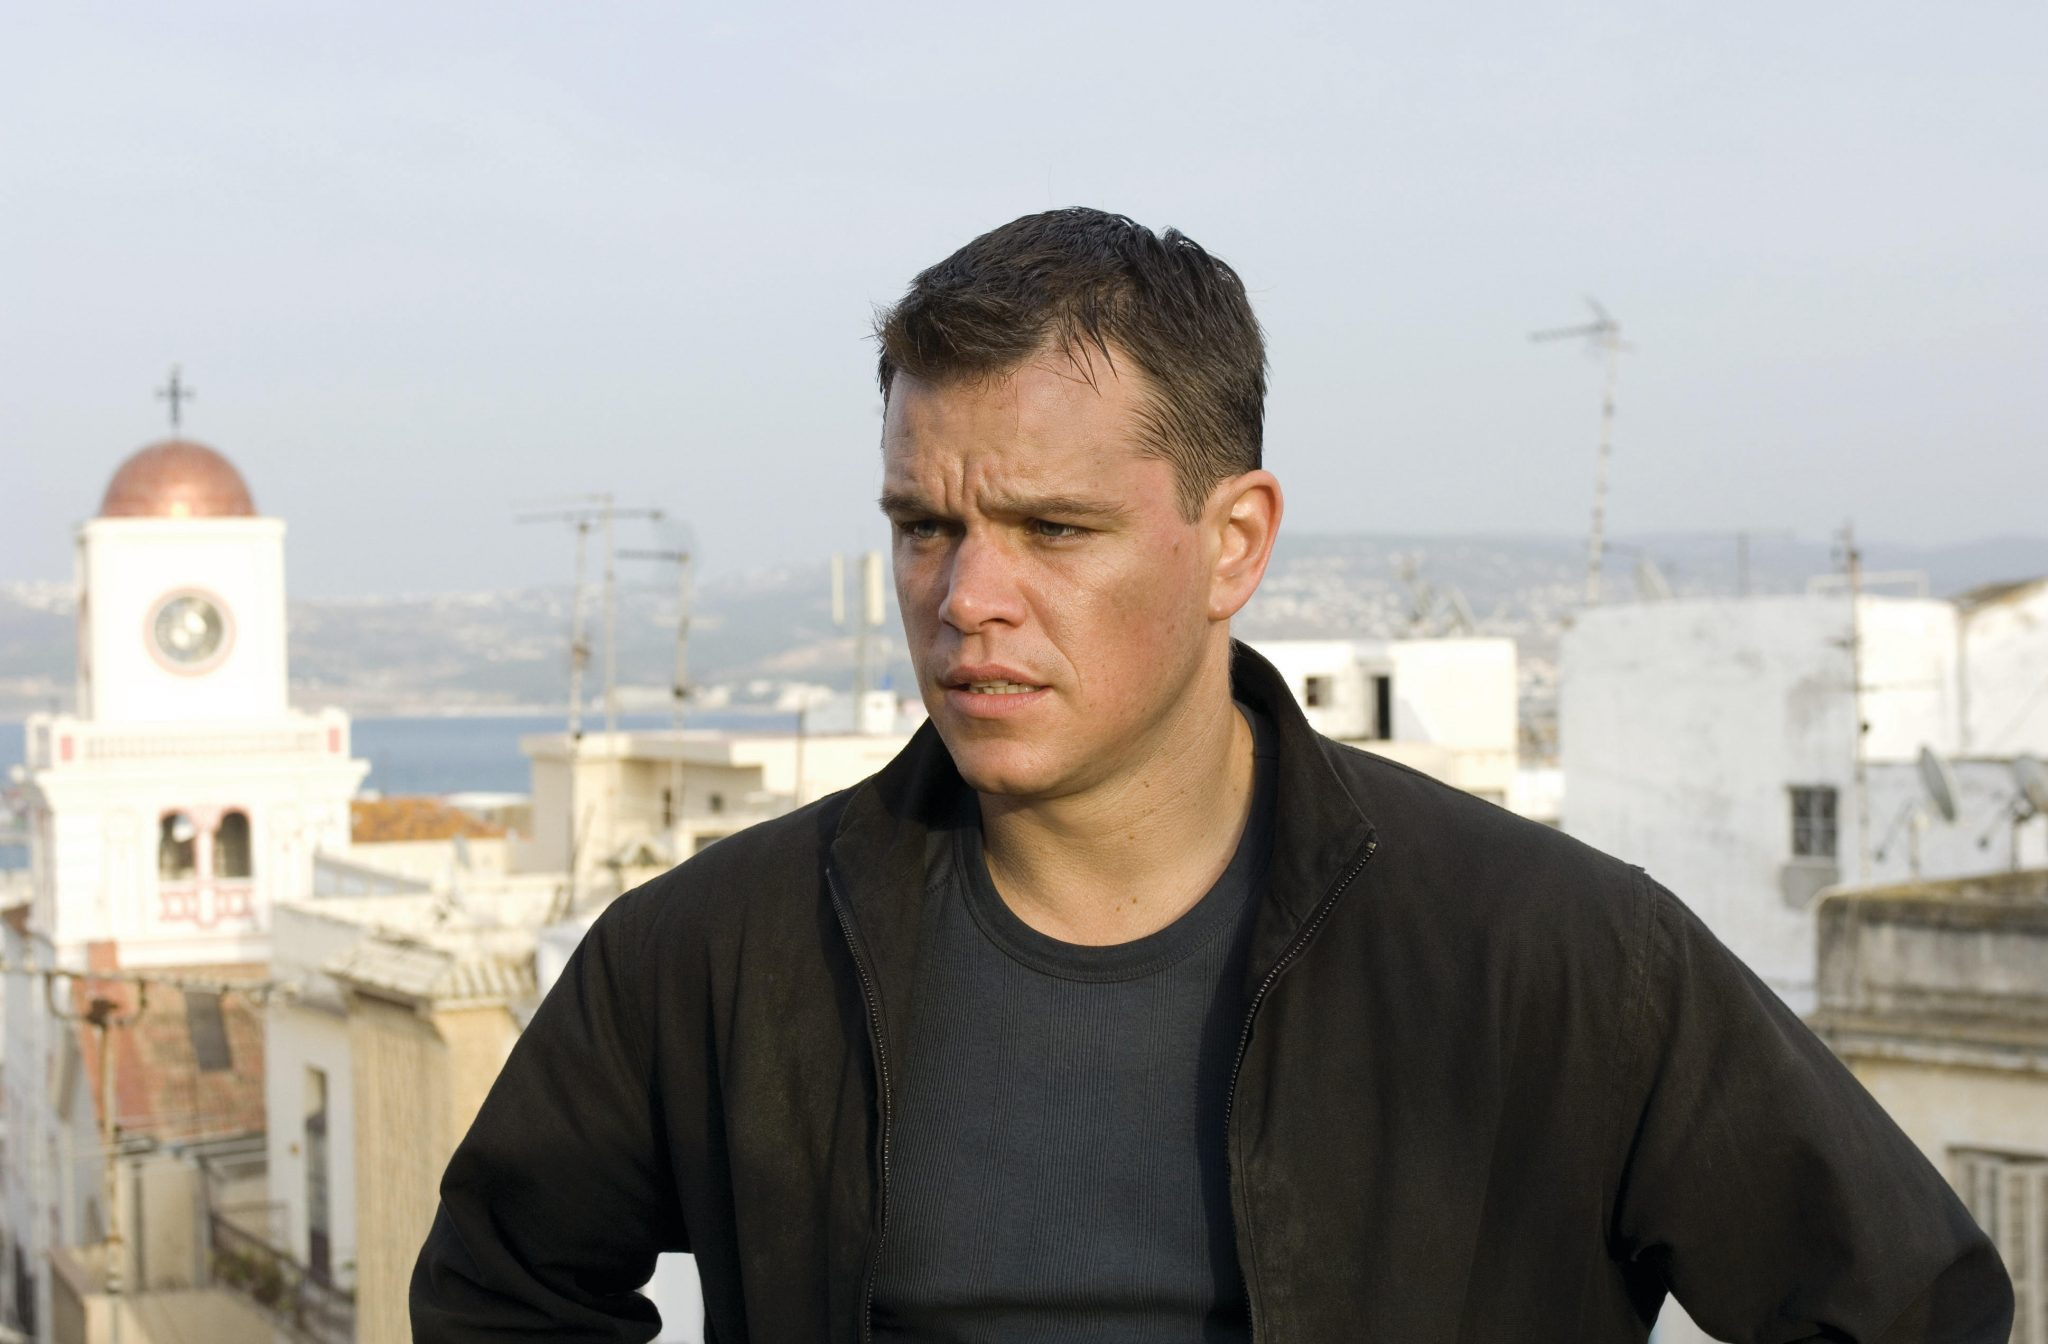 Jason Bourne (MATT DAMON) surveys his quarry in Tangier in the espionage thriller that takes Bourne back home: ?The Bourne Ultimatum?.